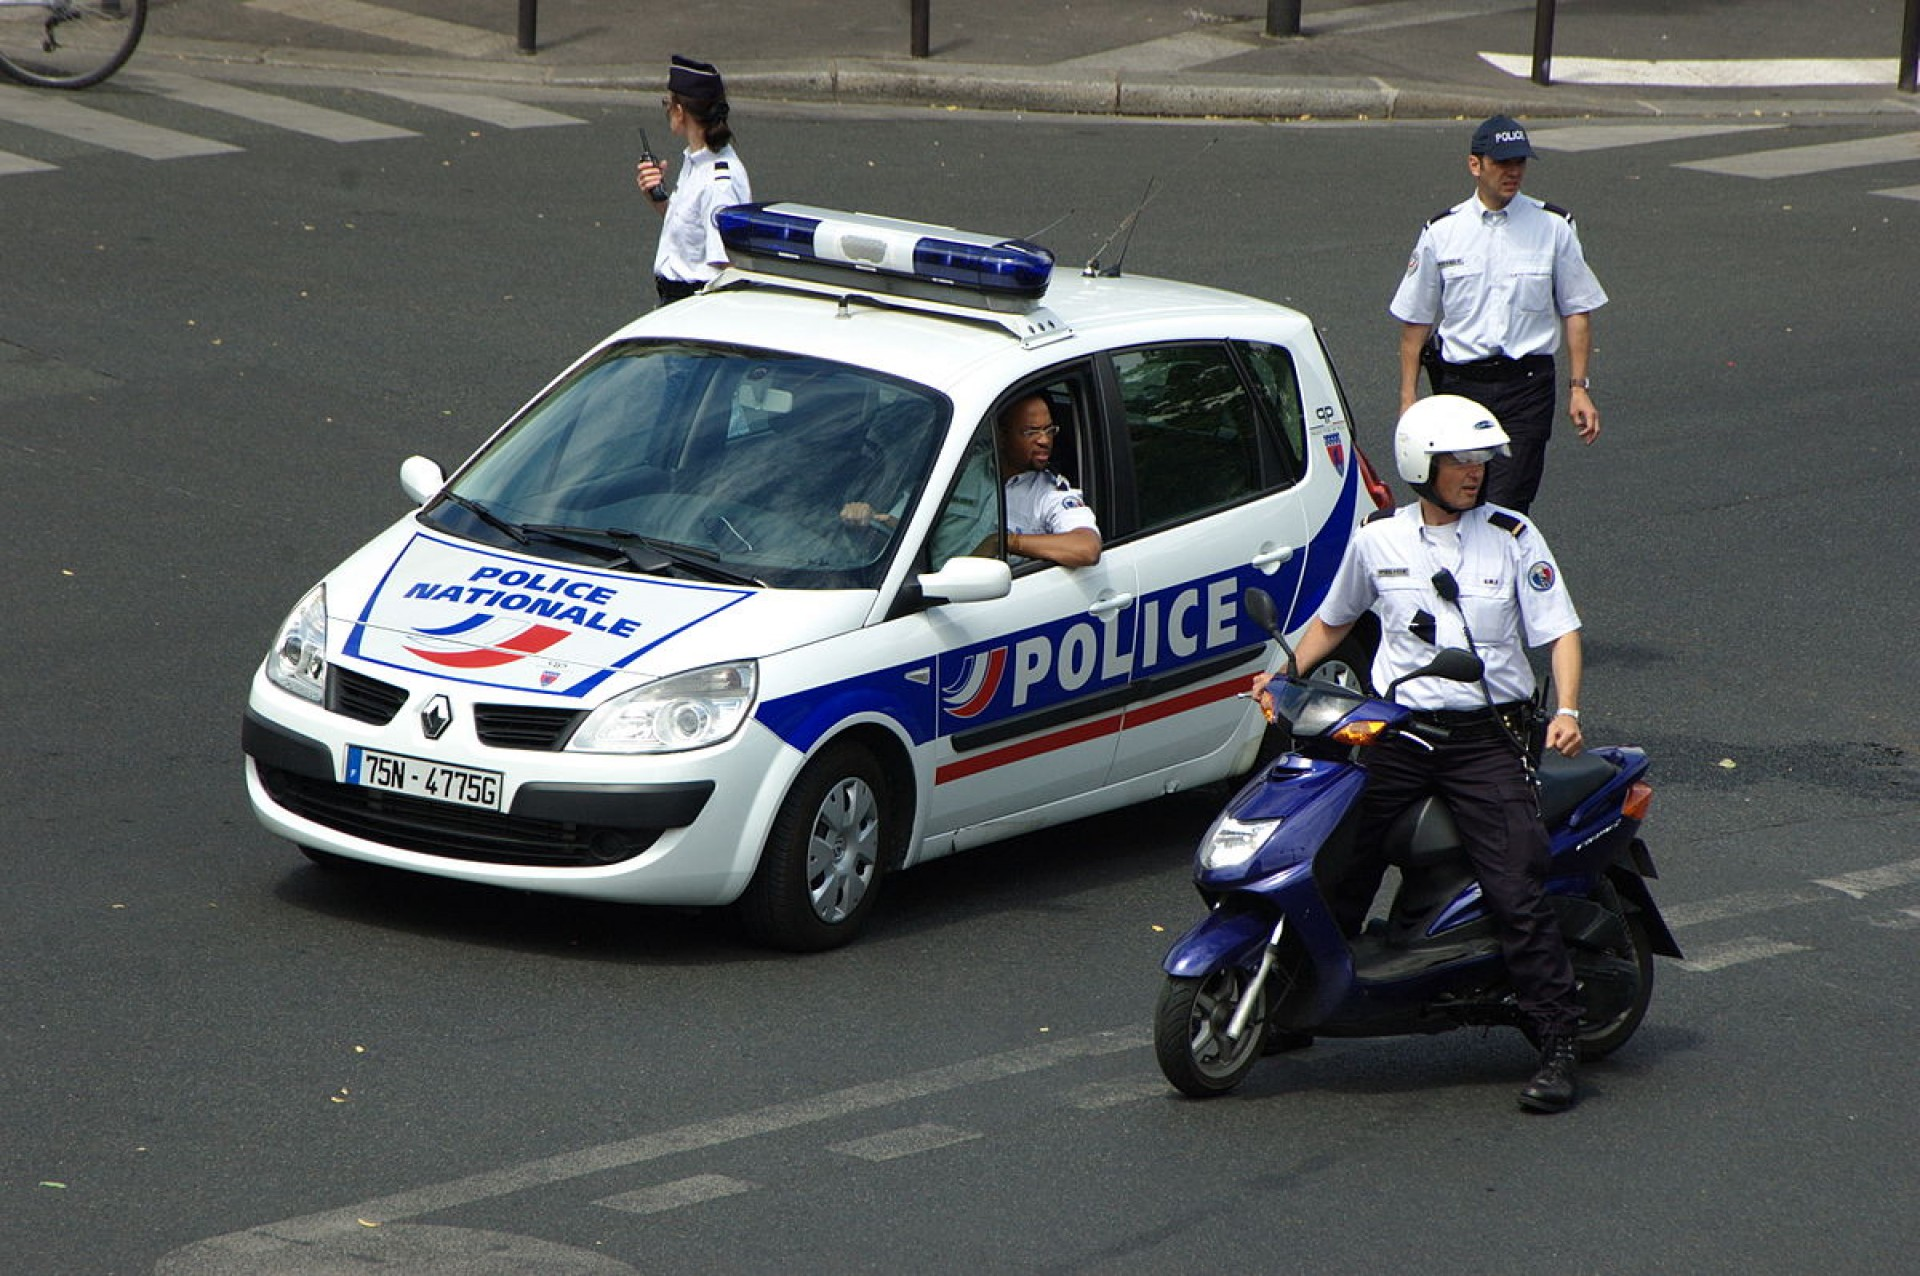 013 Essay Example 1200px Police Prc3a9parant L27arrivc3a9e D27une Manifestation Jpg Short On Outstanding Transportation My Favourite Means Of Transport Public Water 1920